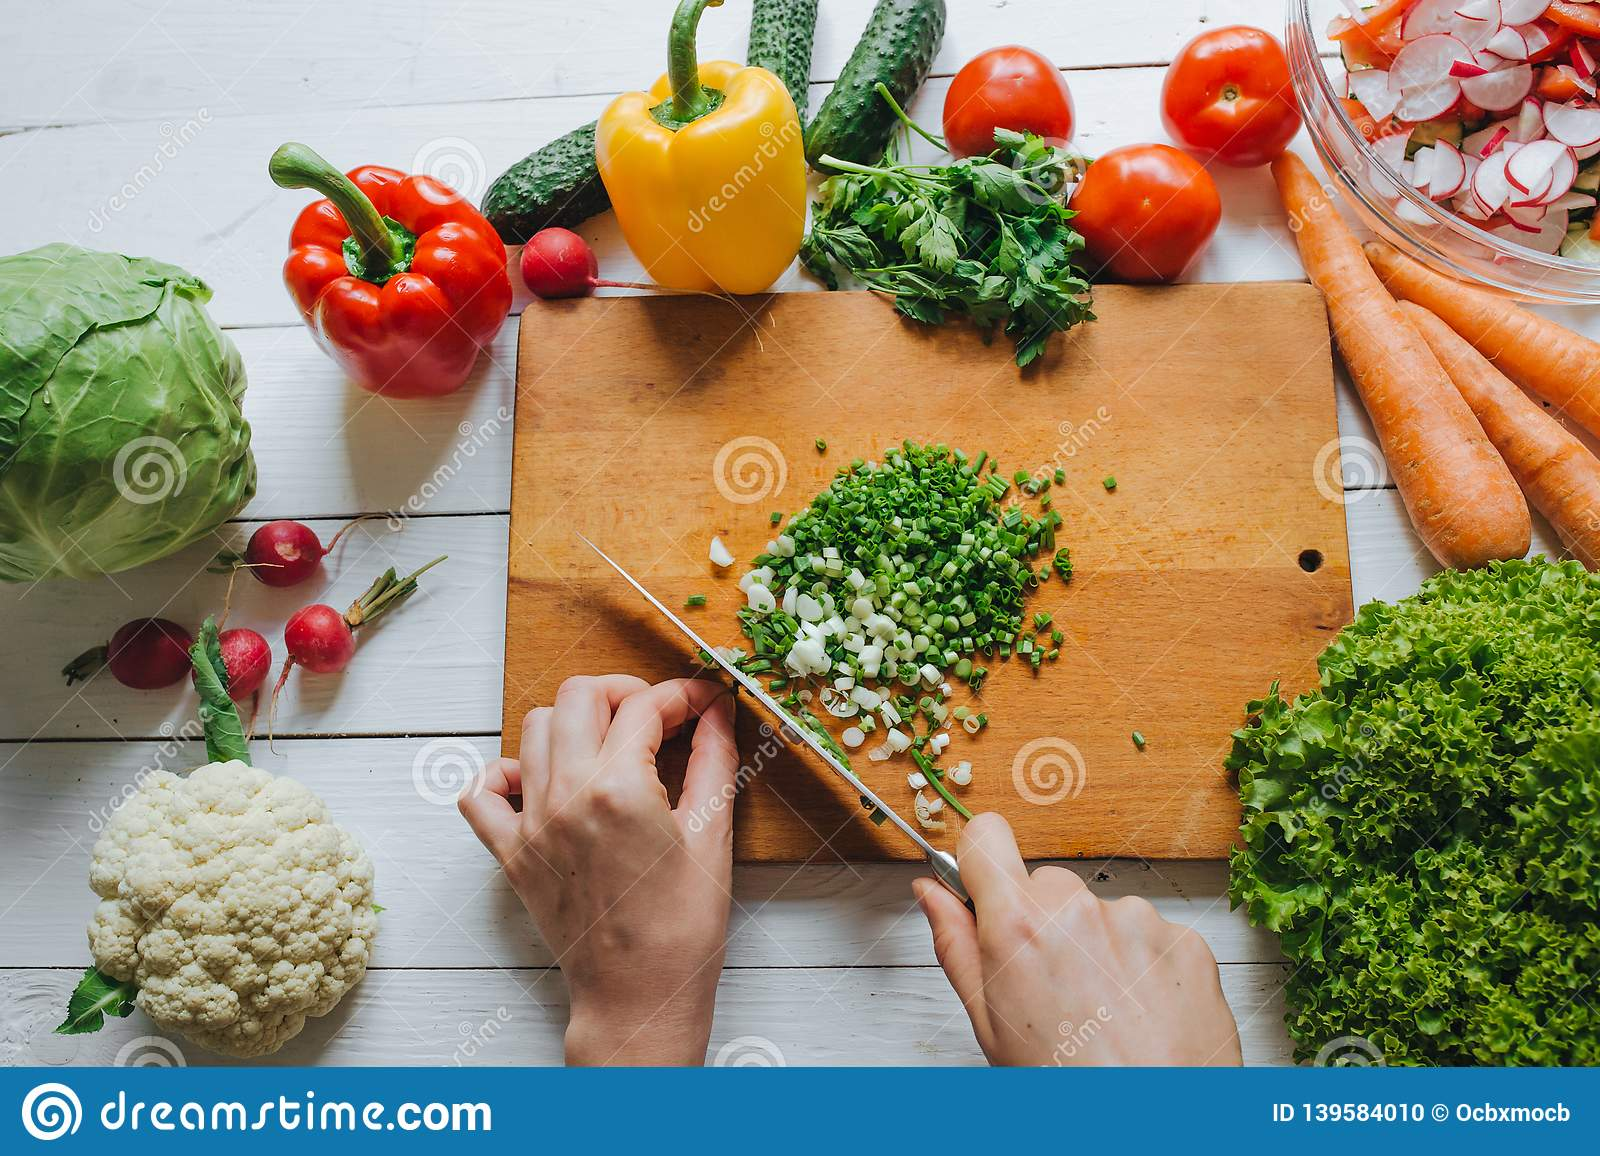 Woman hands cutting fresh green onion on wooden board overhead top view. White table background. Healthy cooking concept.